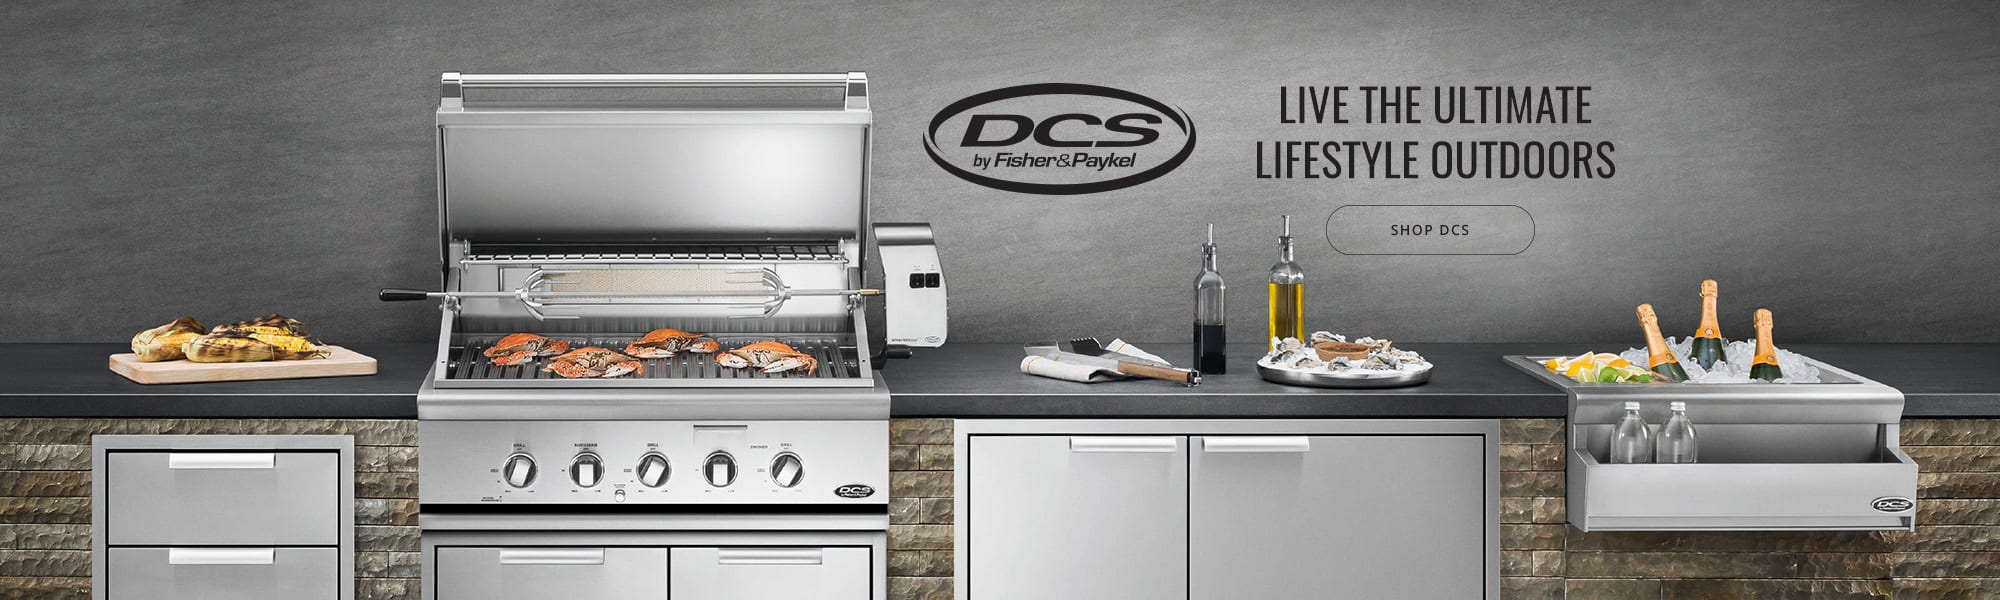 DCS Fisher and Paykel banner